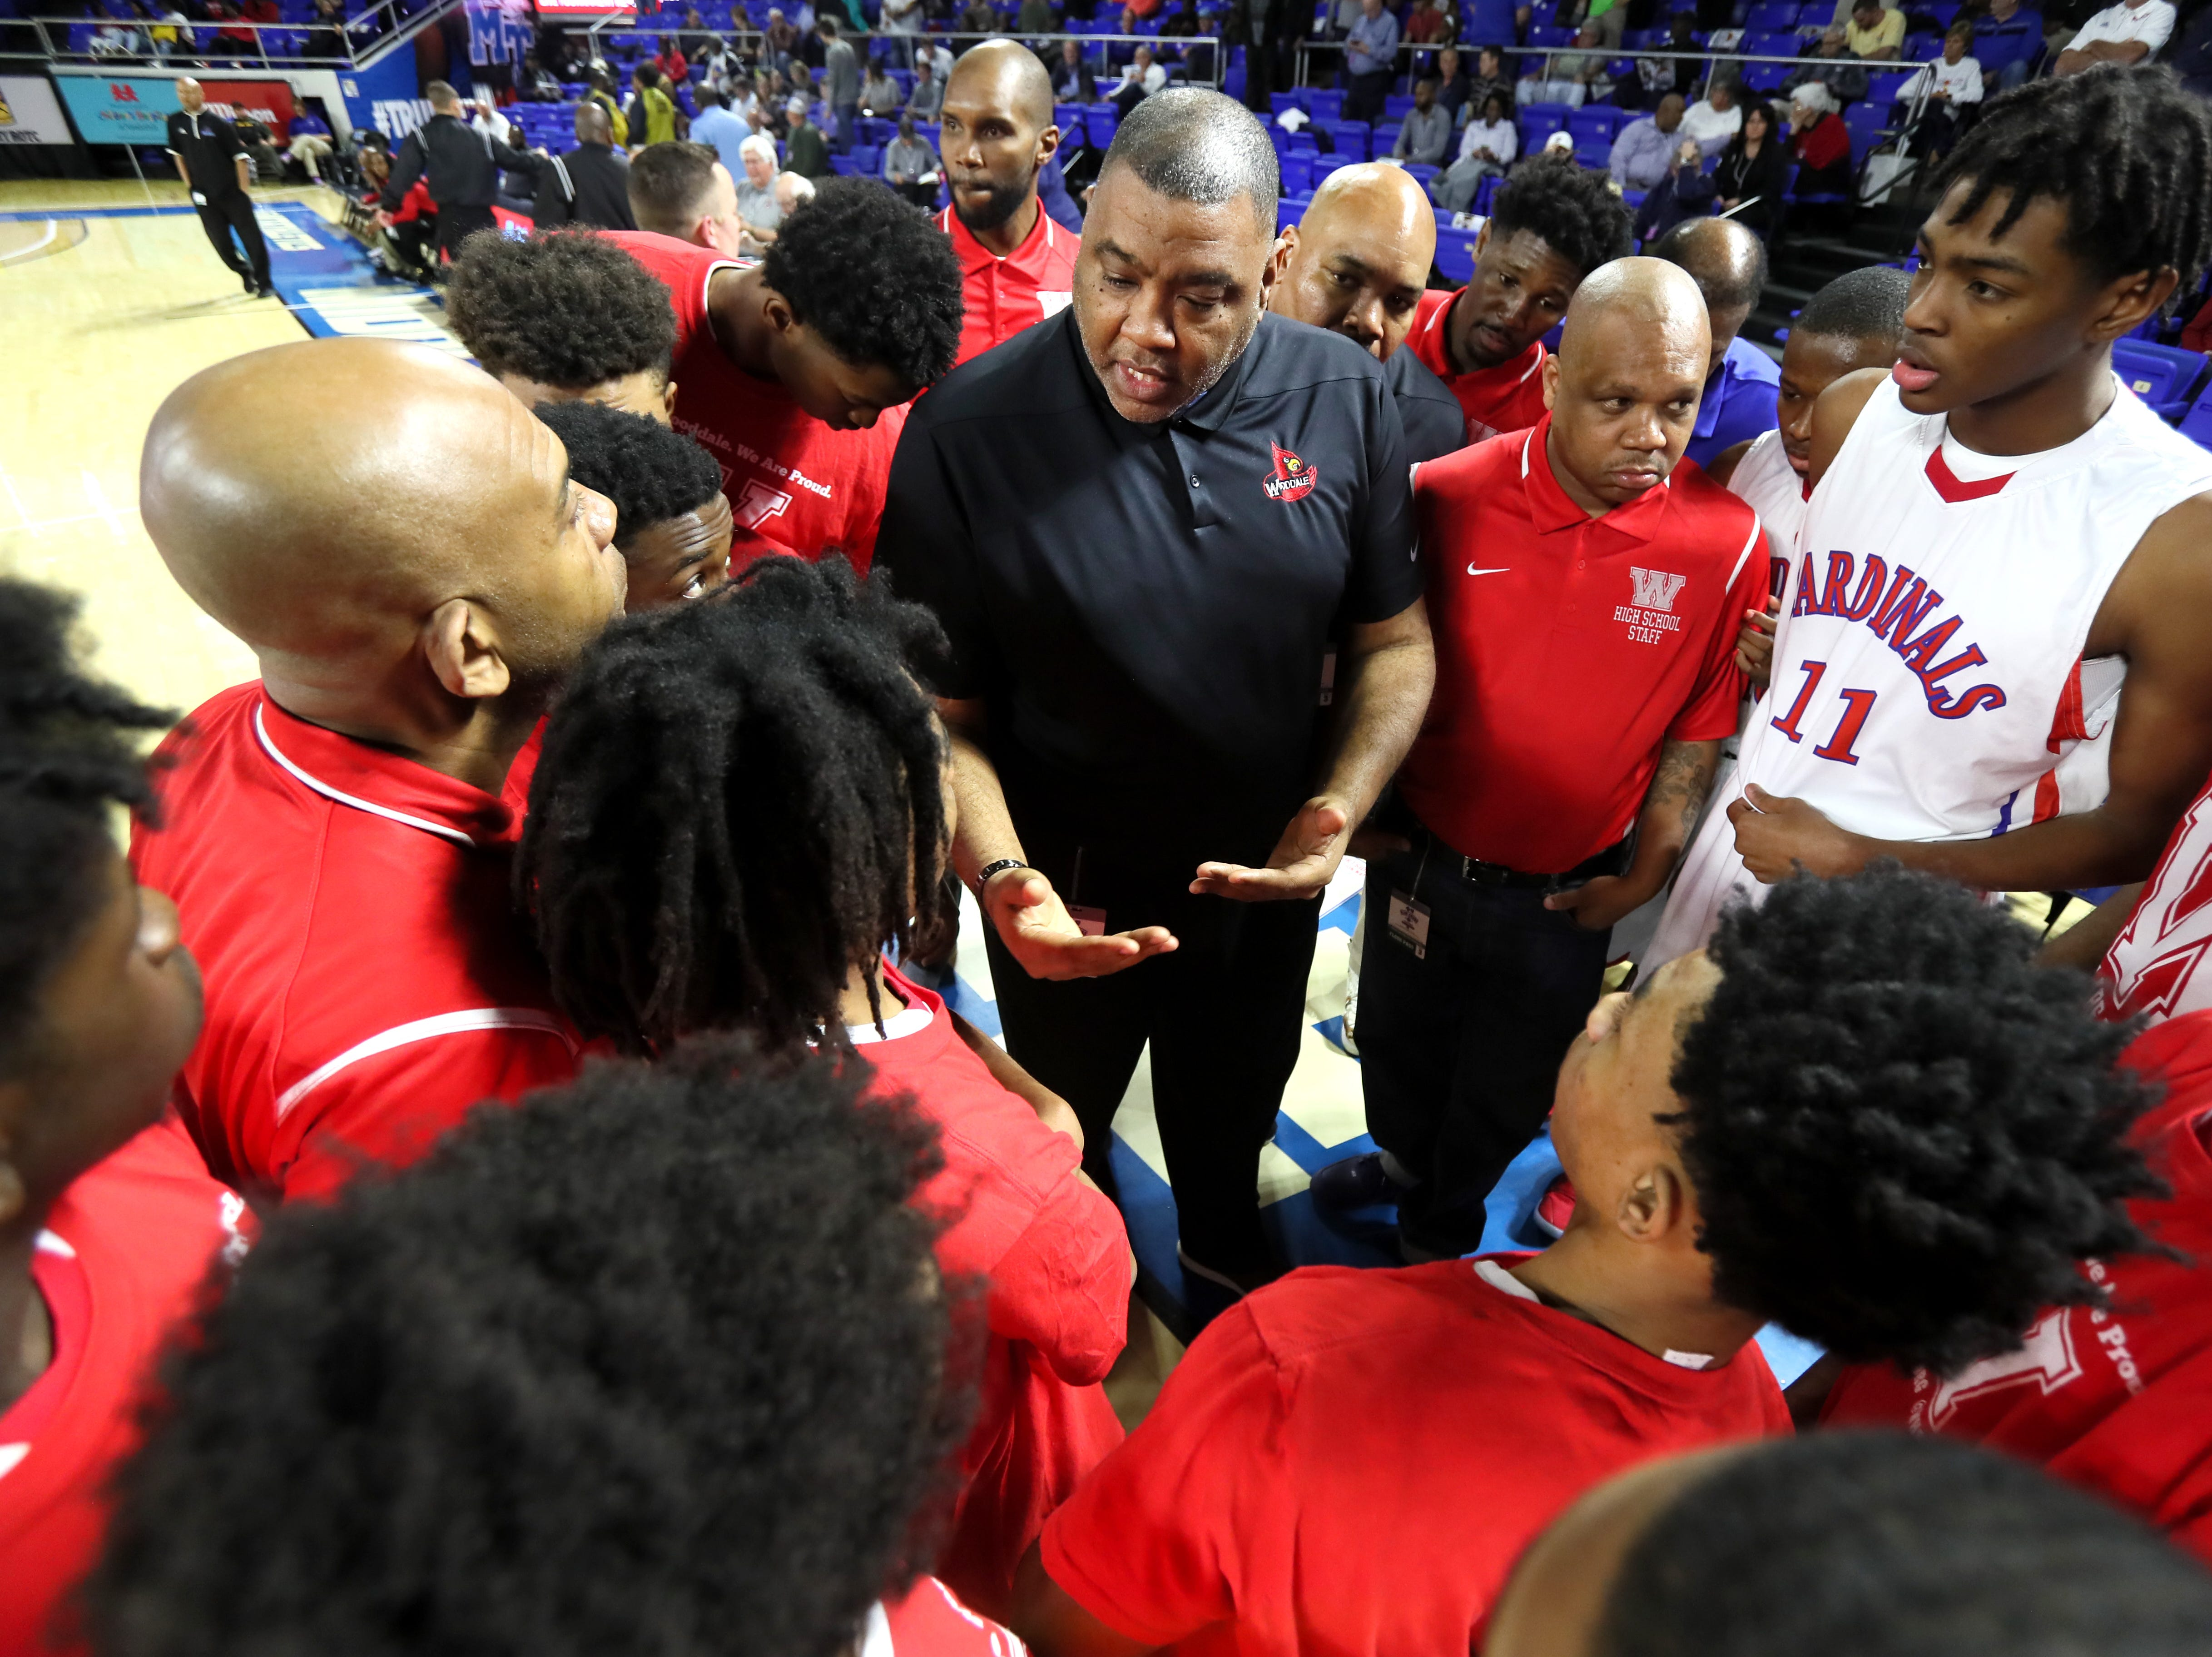 Wooddale Head Coach Keelon Lawson talks to his team before they take on Brainerd during the Class AA boys basketball state semifinal at the Murphy Center in Murfreesboro, Tenn. on Thursday, March 14, 2019.